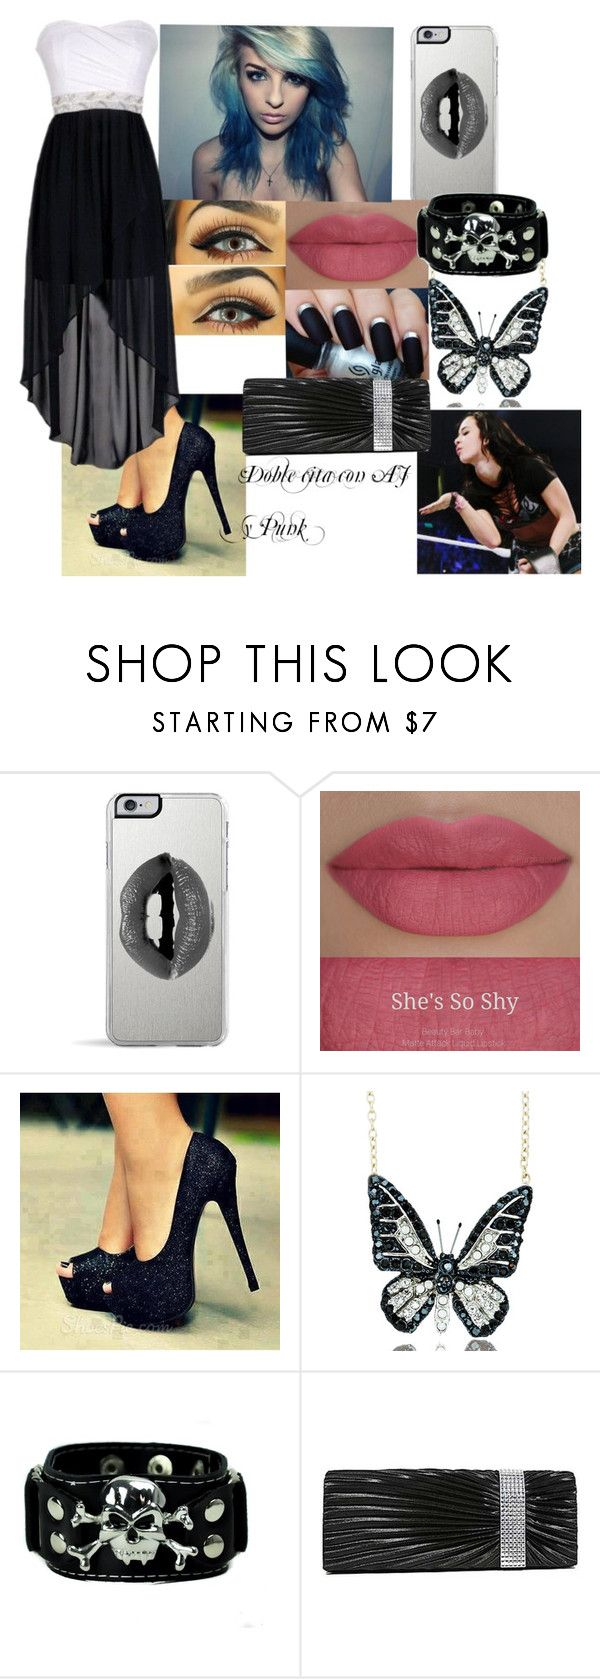 """Doble cita con AJ y Punk + color de pelo nuevo"" by rampaige12 ❤ liked on Polyvore featuring Lipsy, She's So and Andrew Hamilton Crawford"